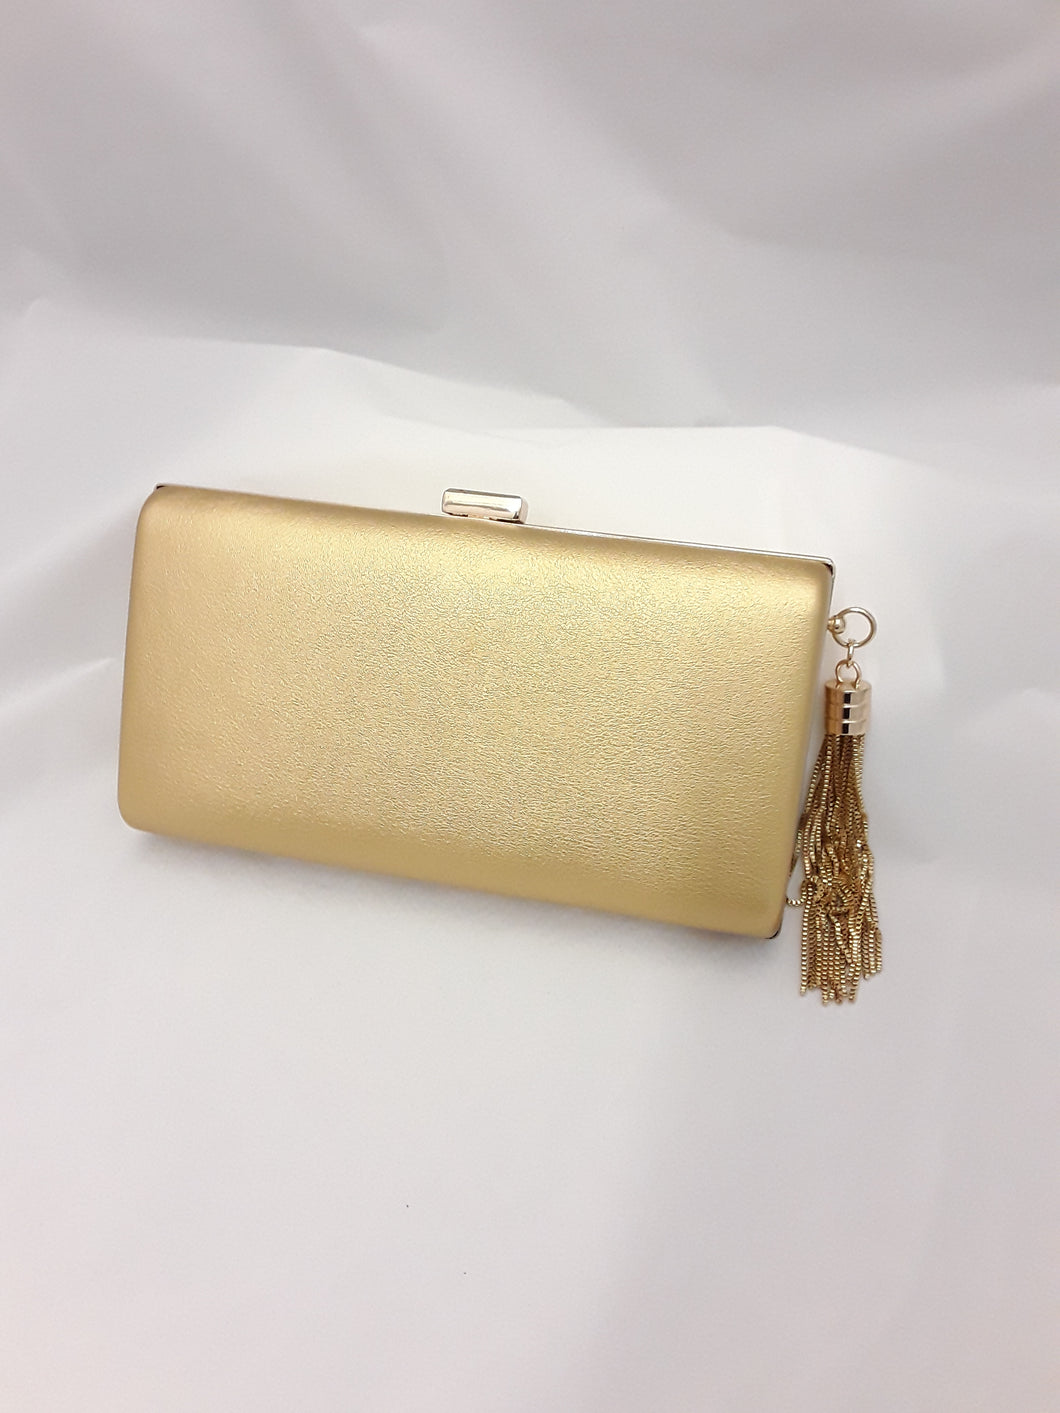 Gold matt clutch 779 with tassle